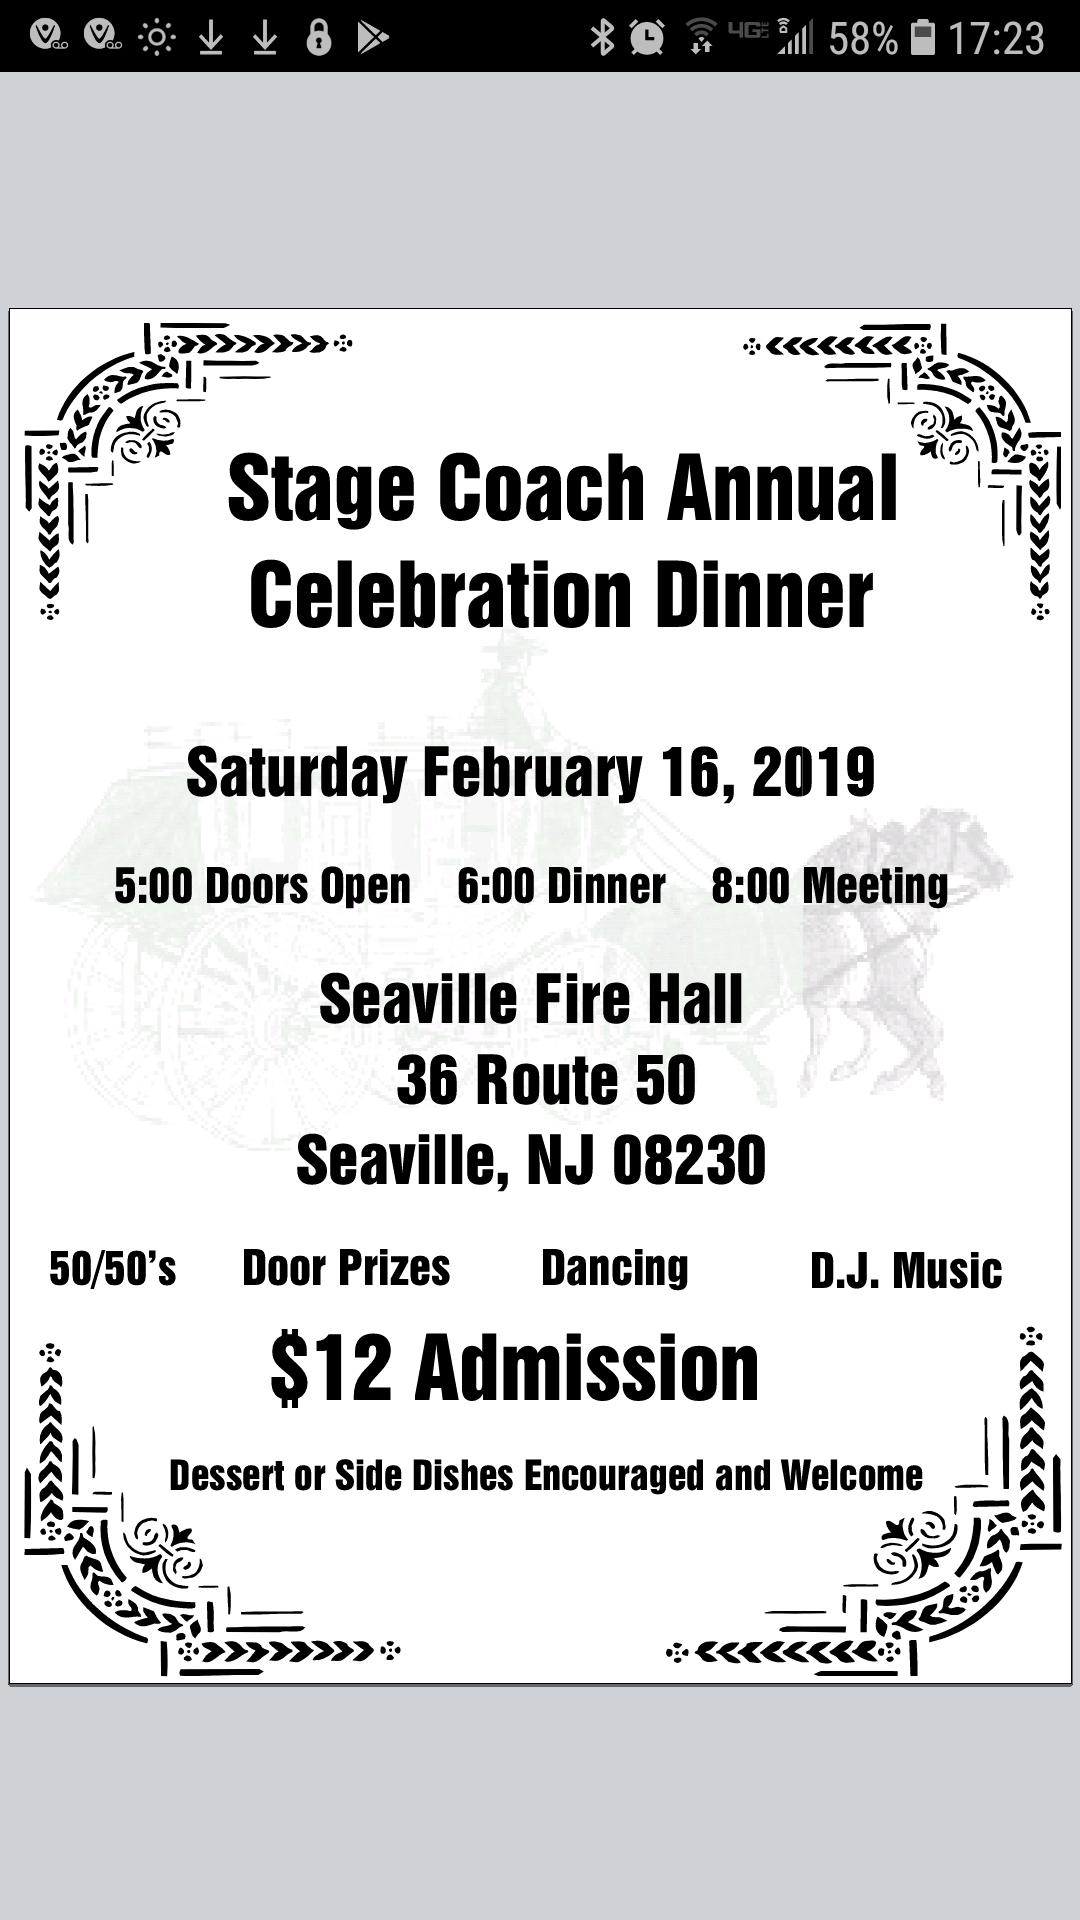 02.16.19 Stage Coach Annual Dinner